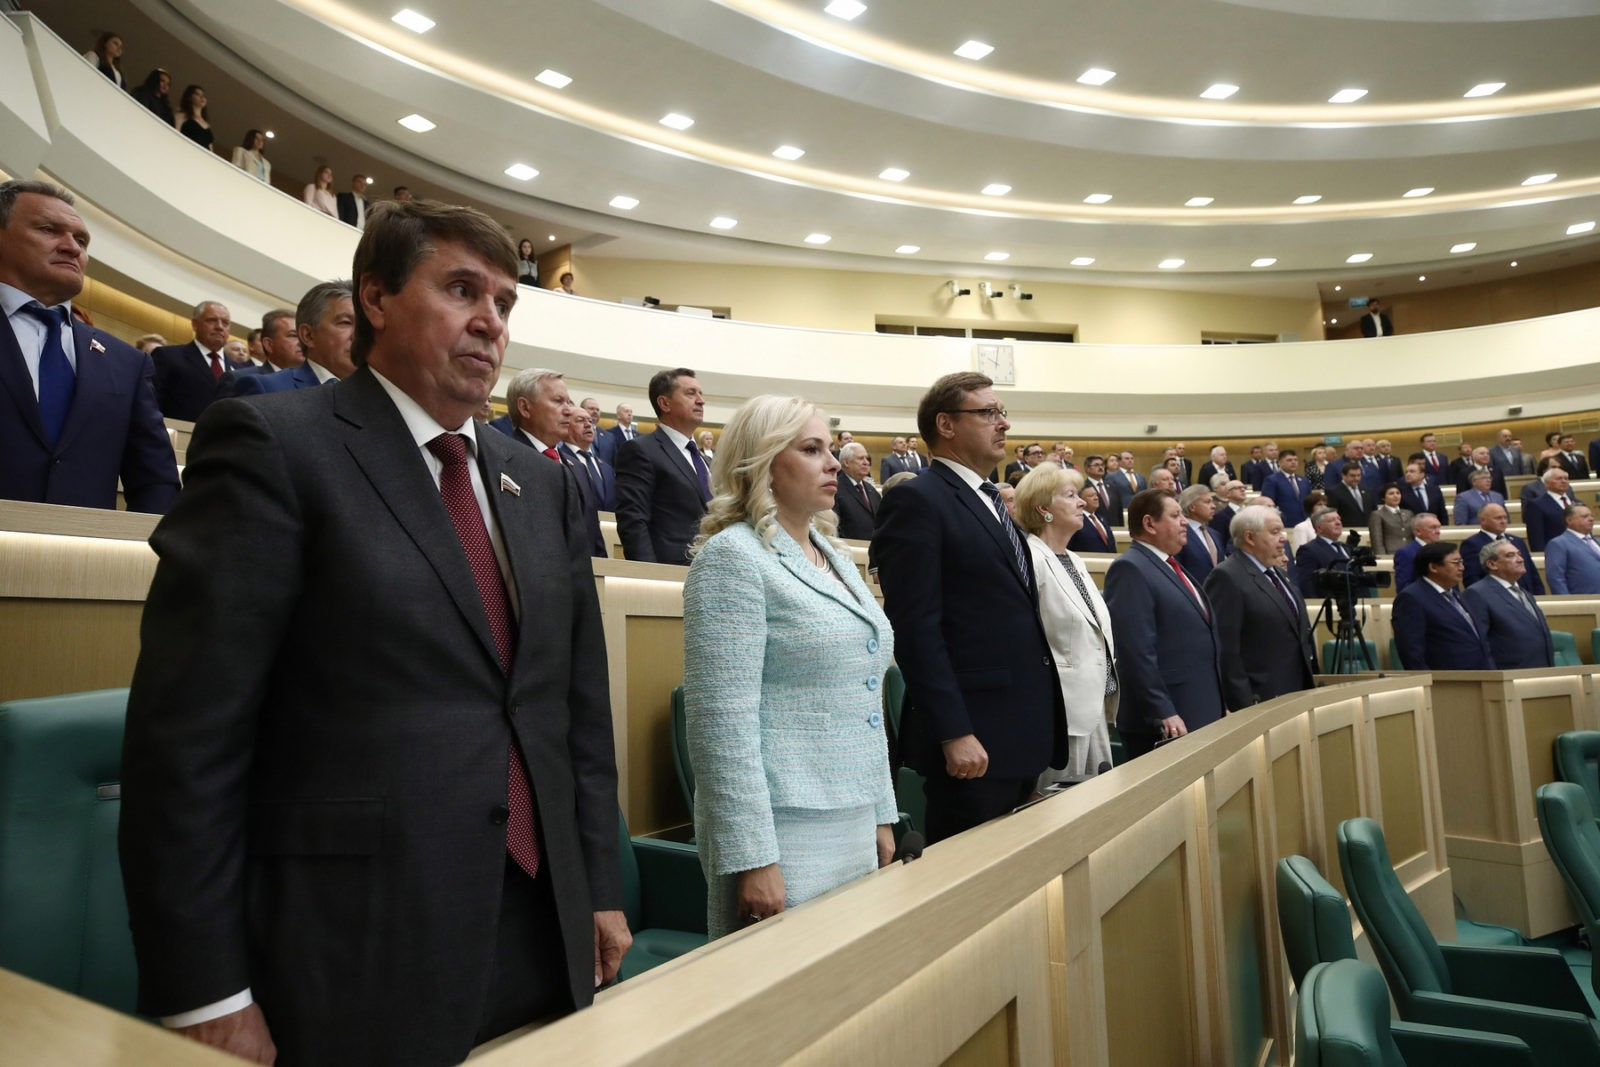 Almost all State Duma deputies refused a minute of silence in memory of Nemtsov 02.26.2016 2